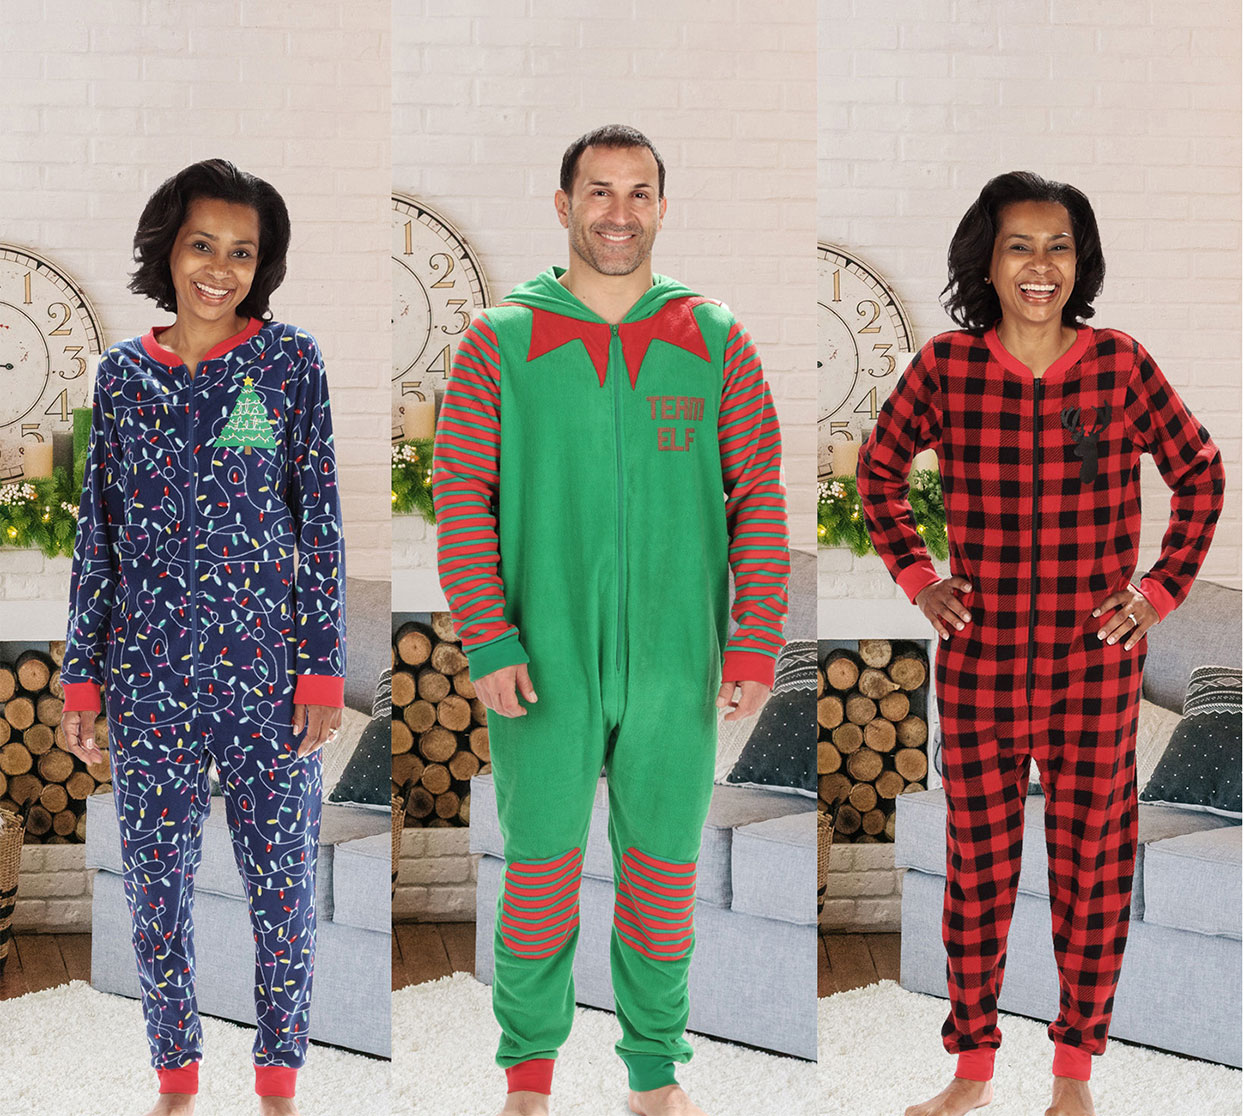 3 different designs of zip up pajamas on models